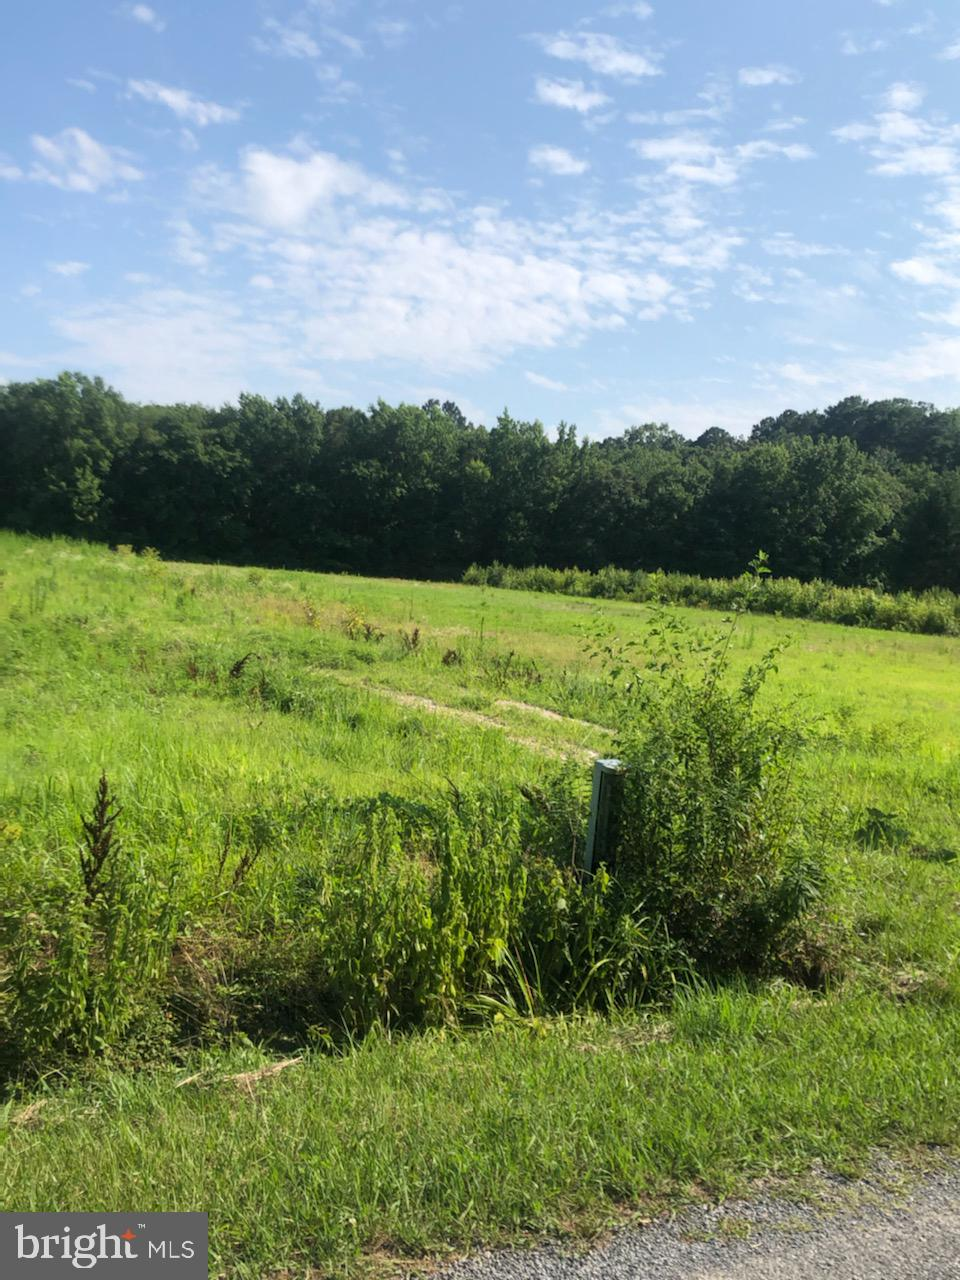 Perced approved building lot with 9.71+/- acres.  Zoned residential, Possibility of subdivision and could possibly be re-zoned to commercial.  Buyer to verify.